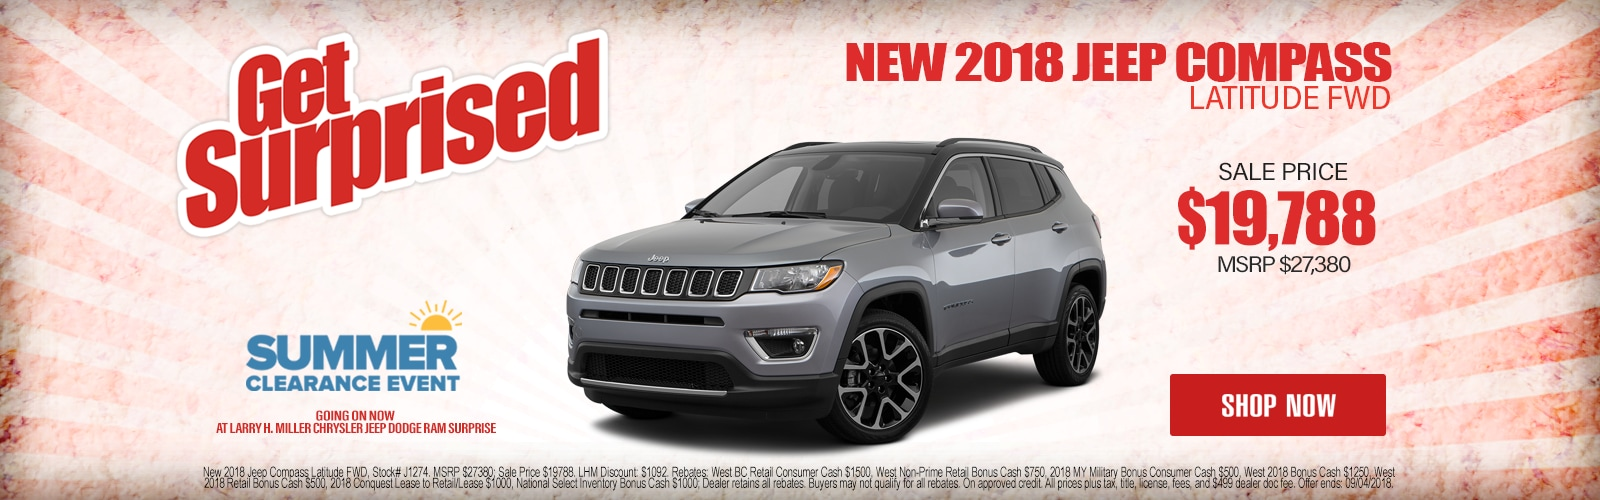 New 2018 Jeep Compass Latitude FWD Starting As Low As $19,788 at Larry H. Miller Chrysler Jeep Dodge Ram Surprise